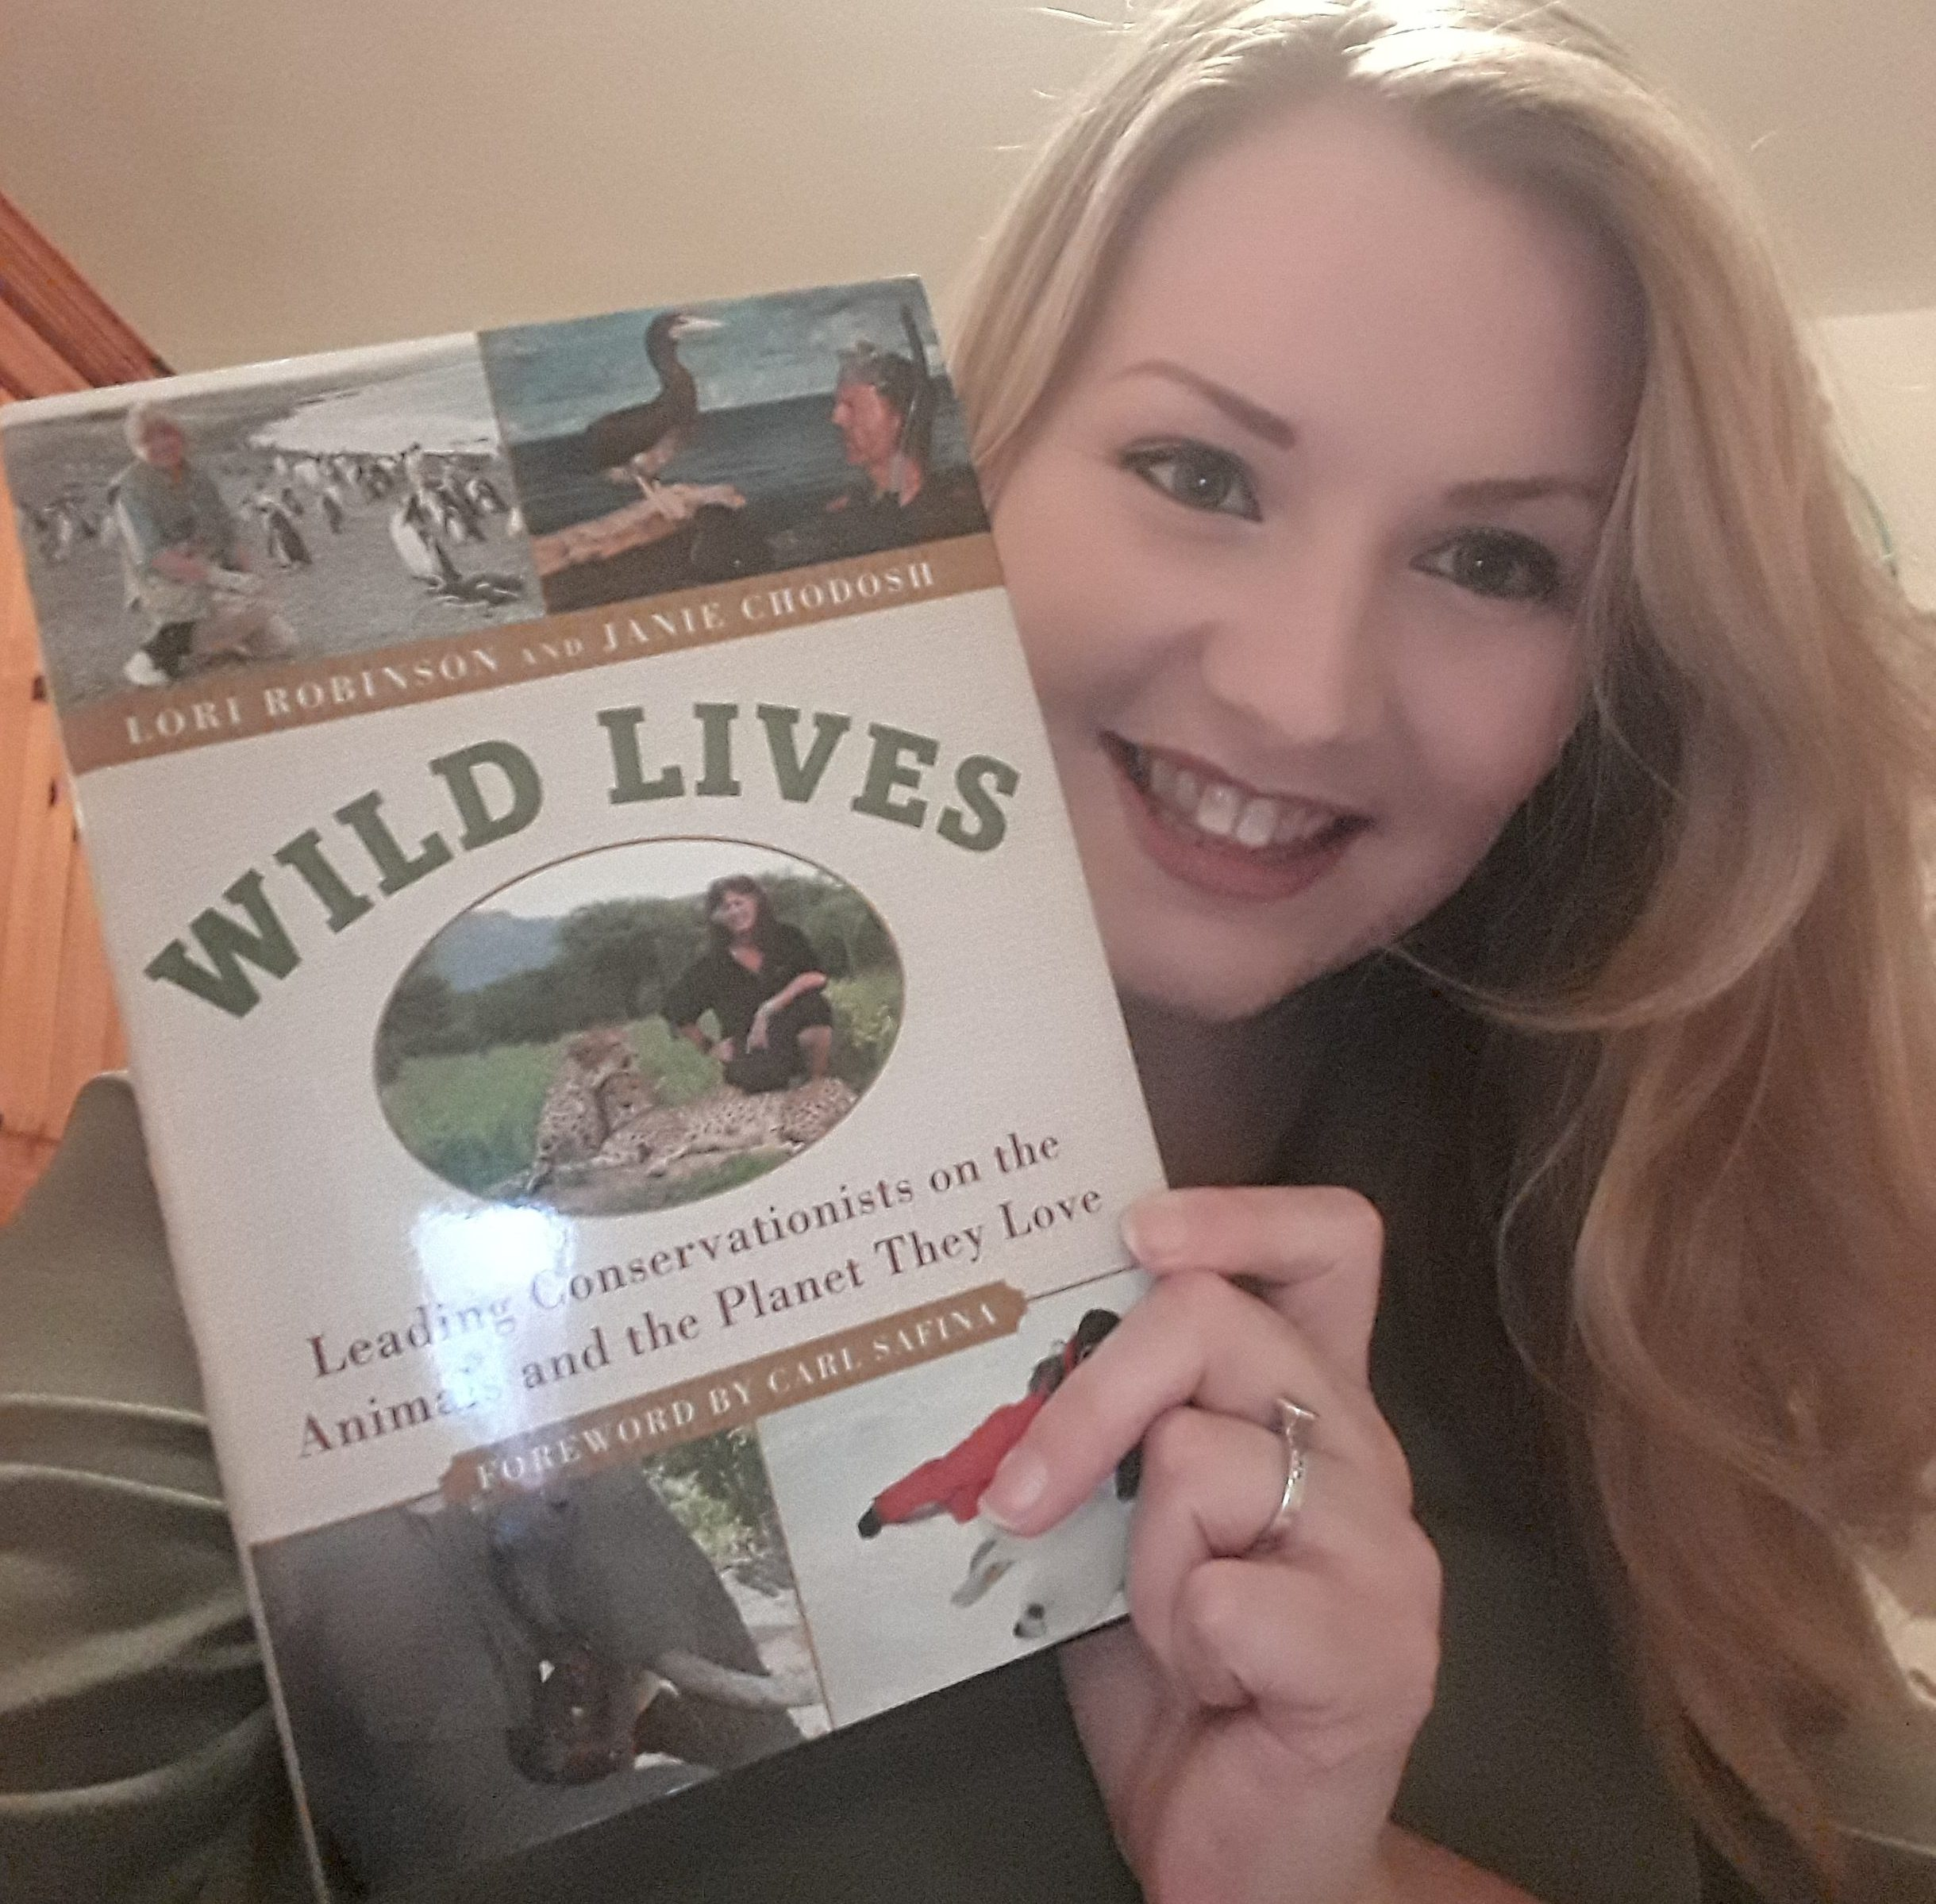 Kate on Conservation holds Wild Lives book by Lori Robinson and Janie Chodosh